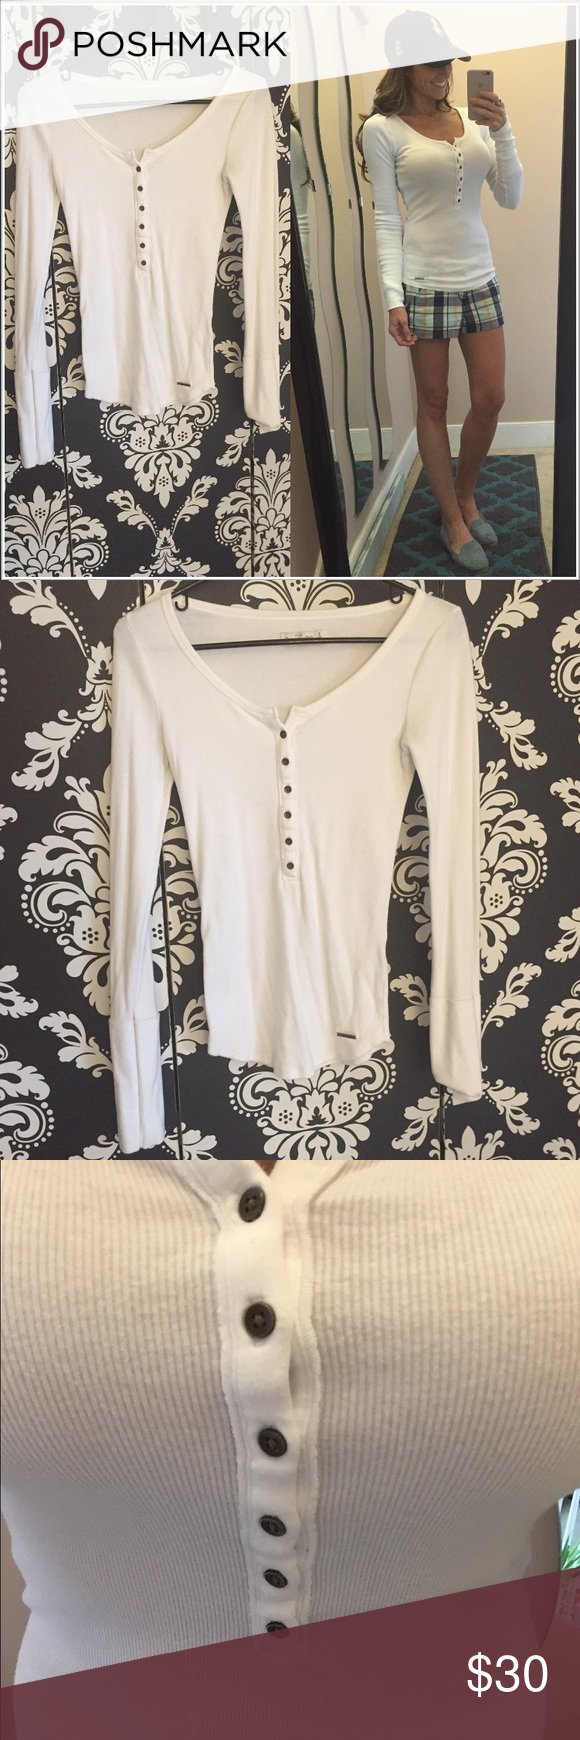 Ribbed Henley top from A&F White top with front buttons. Fitted long sleeve shirt. Size S. EUC. Abercrombie & Fitch Tops Tees - Long Sleeve